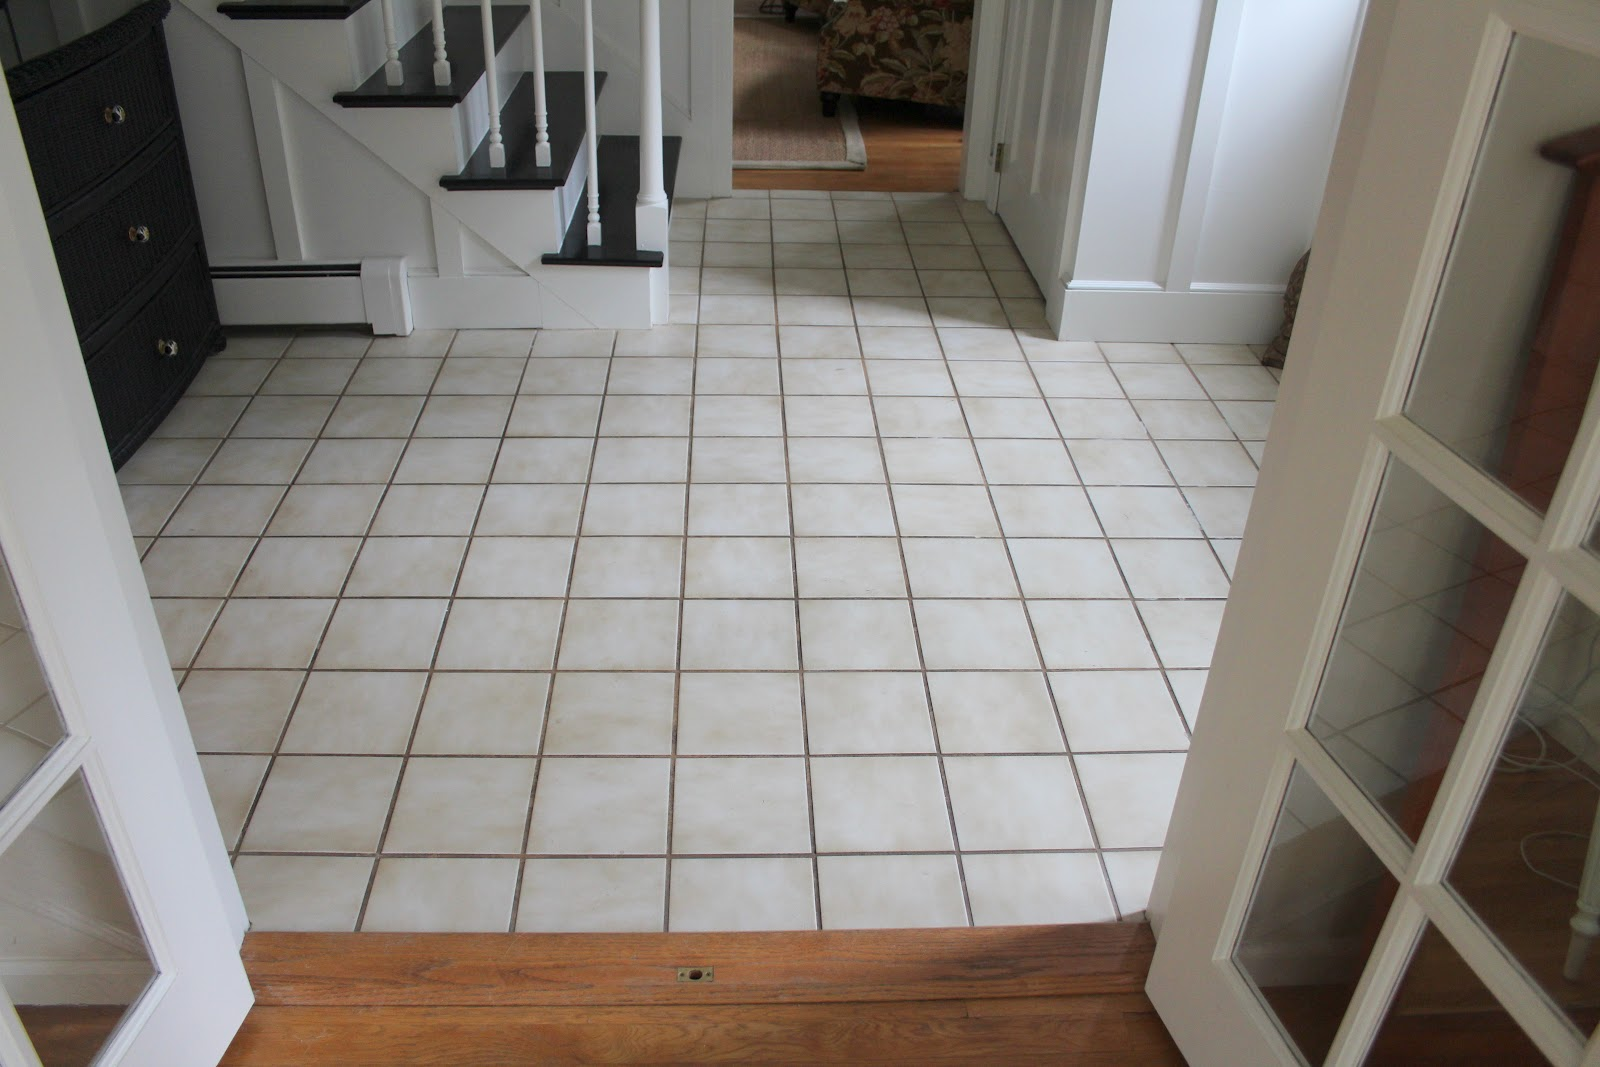 Grout Floor Tile Home Dream Tiny Home Plans